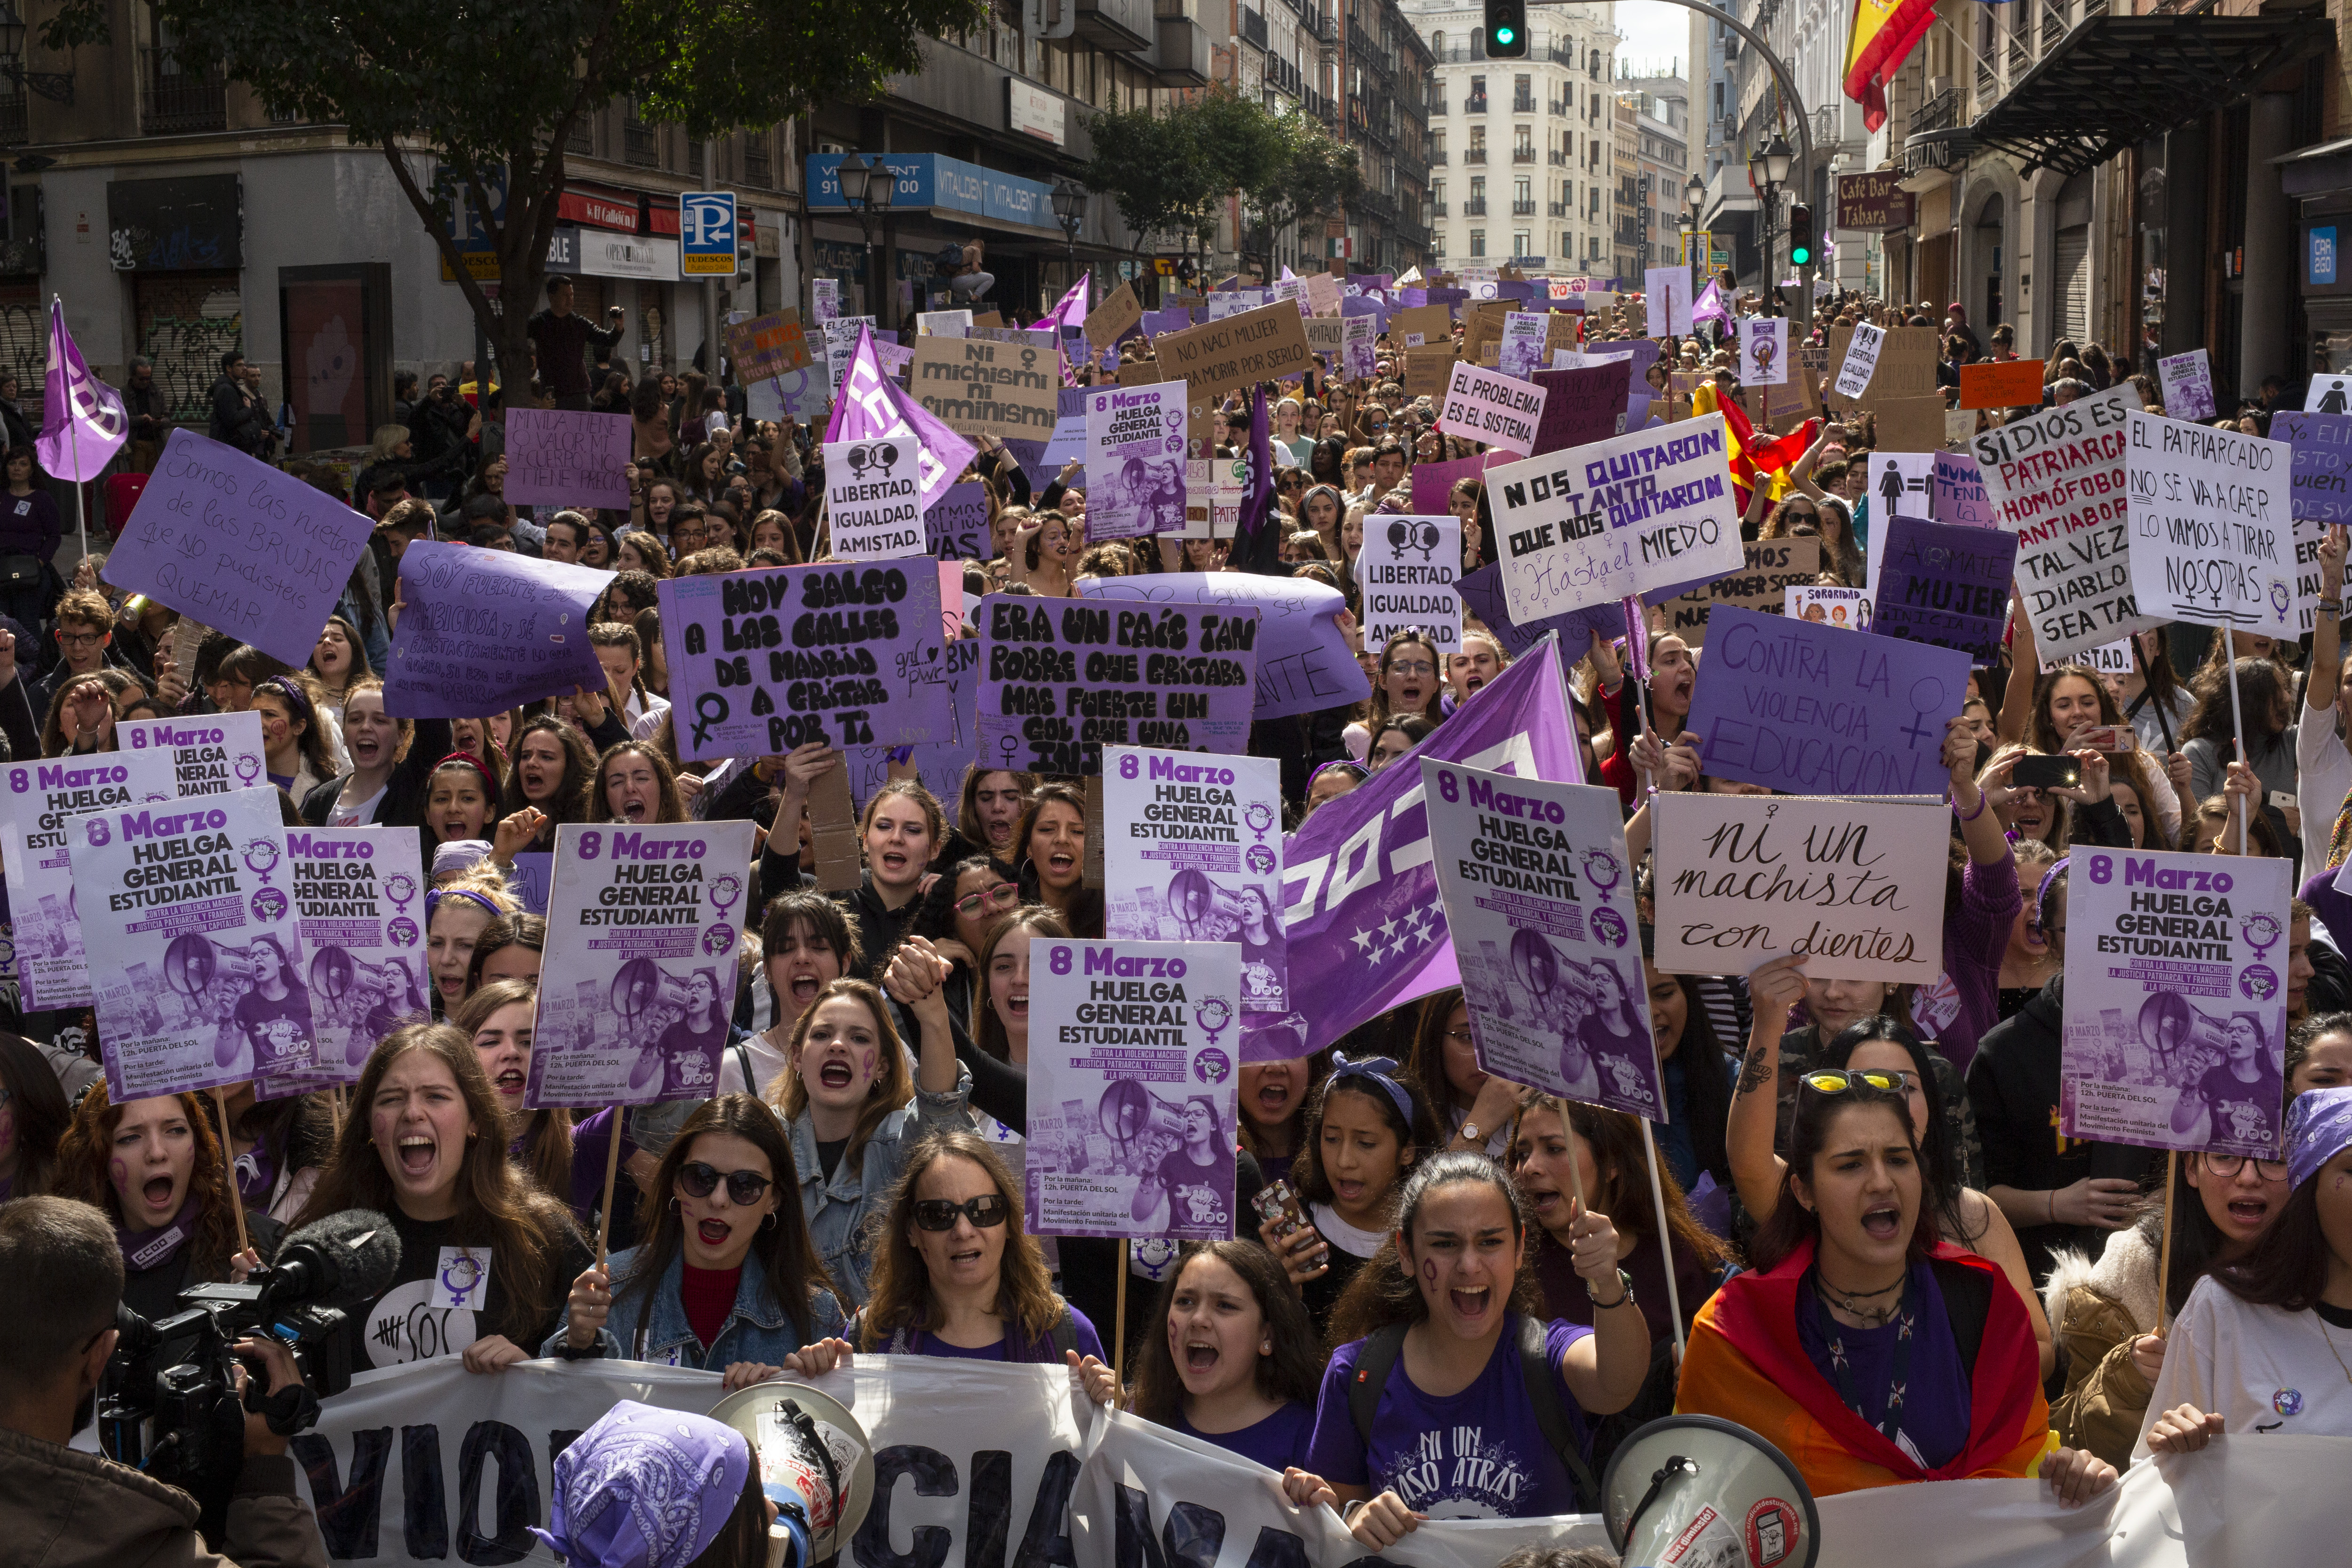 MADRID, SPAIN - MARCH 08: Students holds placards as they protest along the streets during the International Women's Day on March 08, 2019 in Madrid, Spain. (Pablo Blazquez Dominguez/Getty Images)